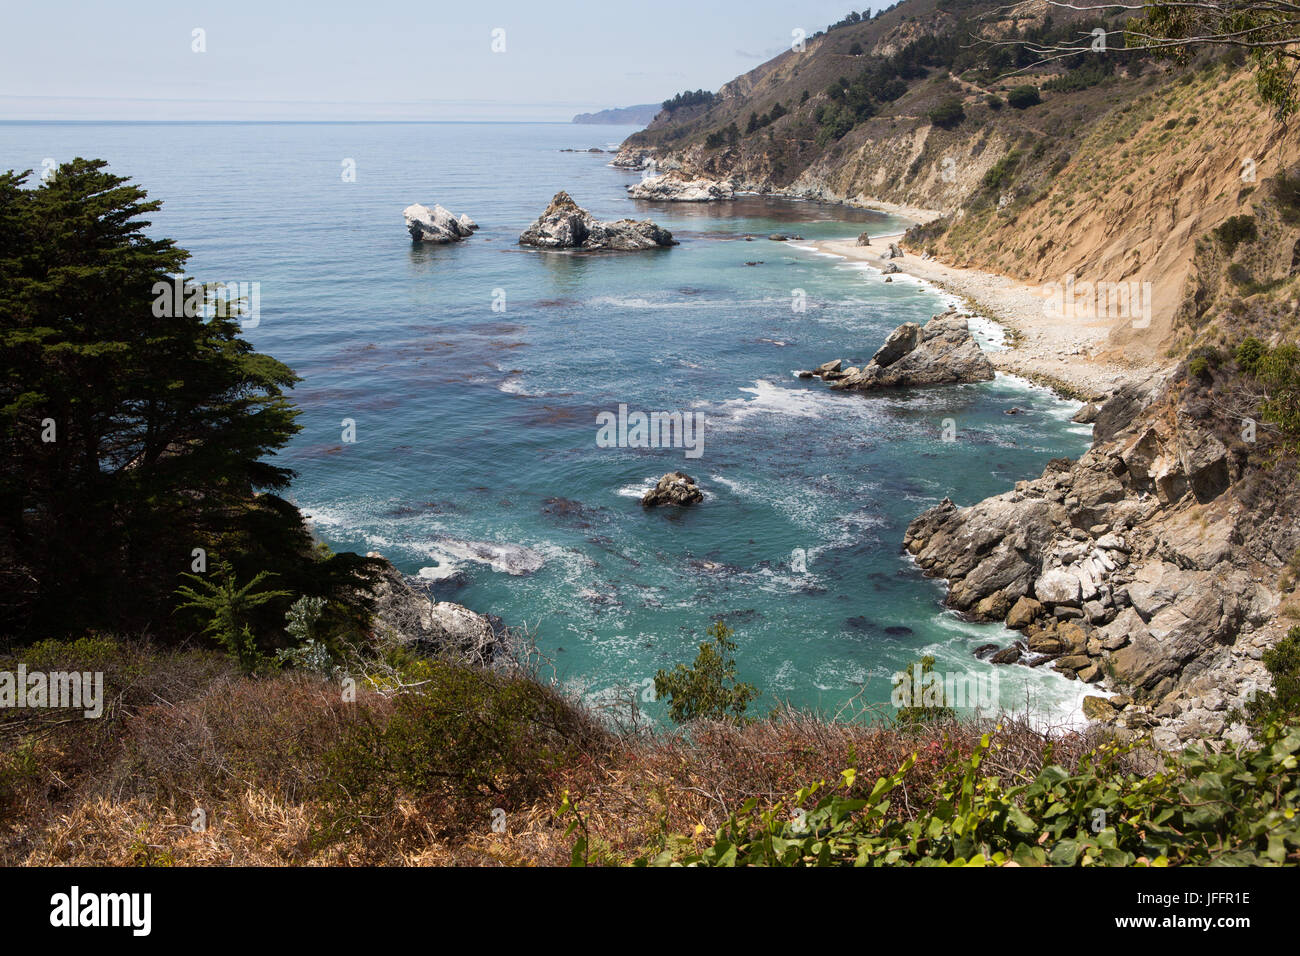 A view of the Pacific Ocean and beaches from the rocky Big Sur coast. Stock Photo